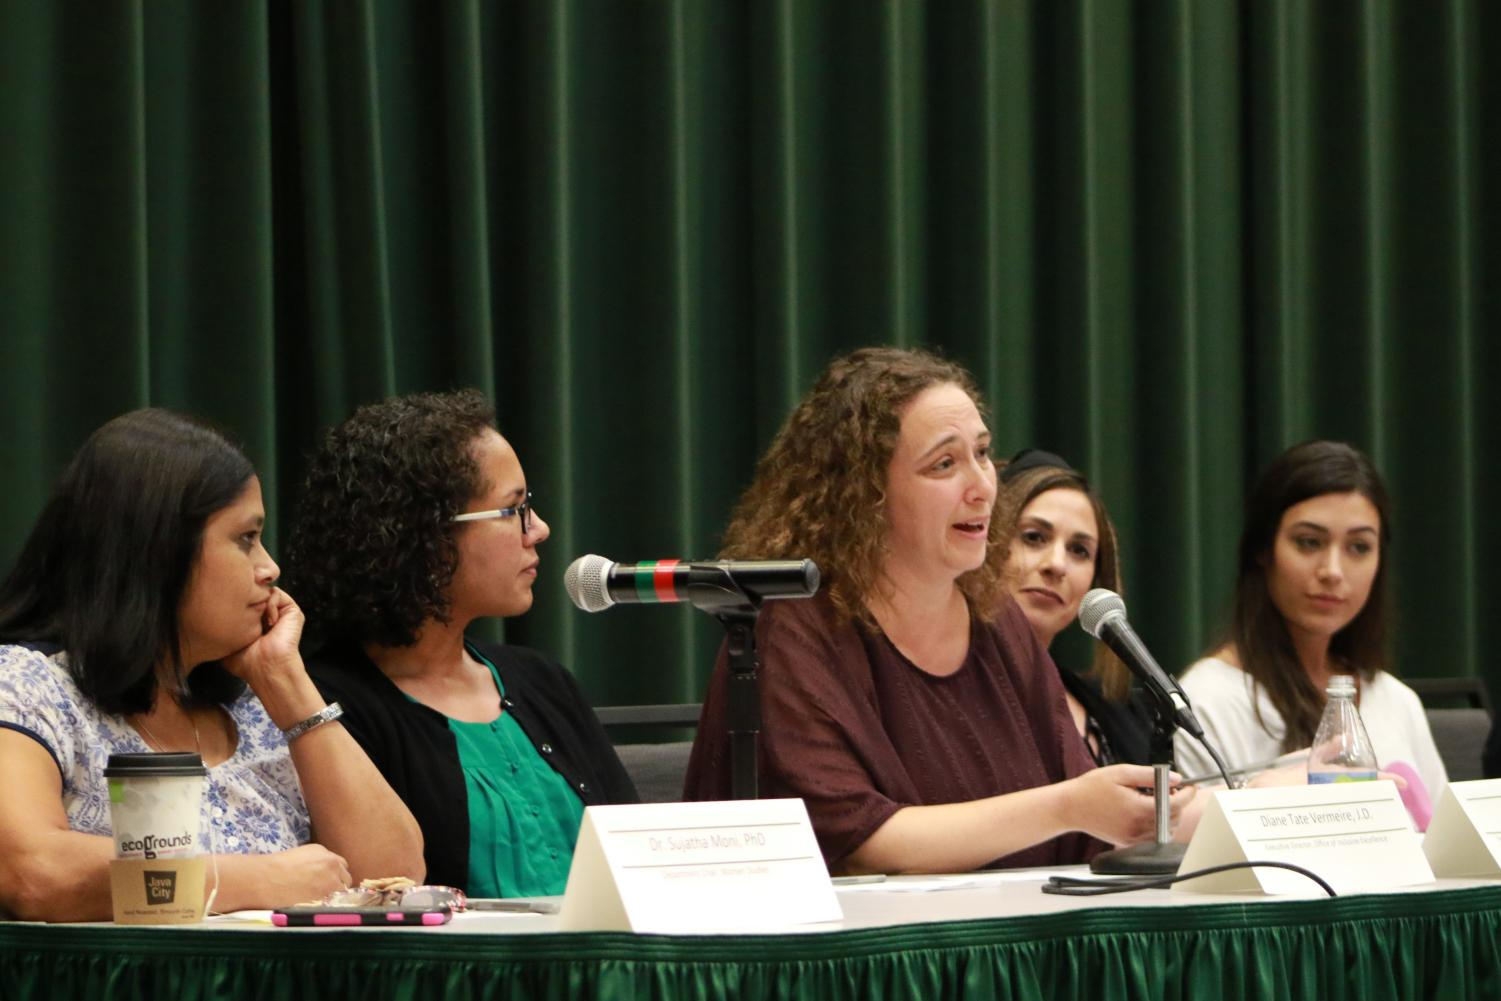 Sujatha Moni, Diana Tate Vermeire, Beth Lesen, Alexa Sardina and Makenzie Neves discuss with students the ramifications of the appointment of Brett Kavanaugh to the U.S. Supreme Court. Panelists discussed concerns with Kavanaugh's partisanship and temperament and compared the treatment of Christine Blasey Ford to Anita Hill.